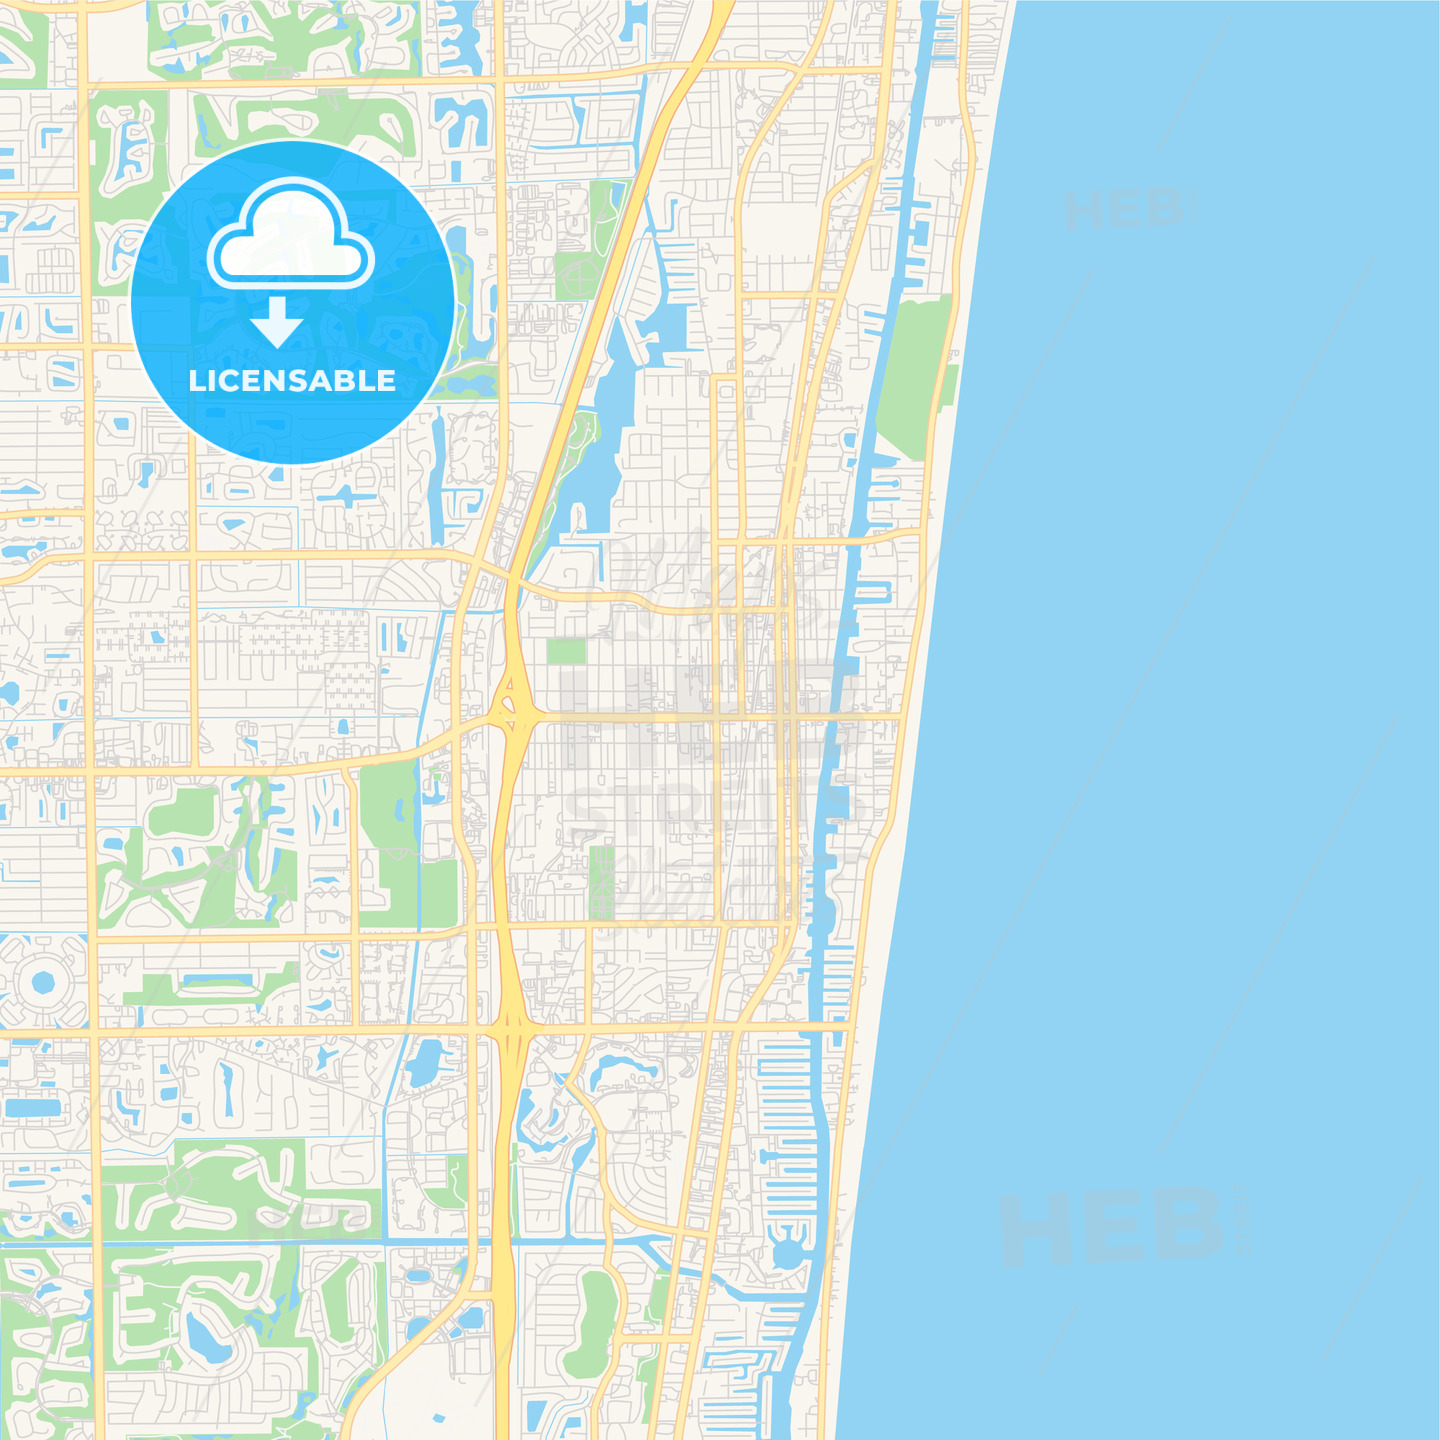 Empty vector map of Delray Beach, Florida, USA on thonotosassa map, lake worth inlet map, north jacksonville map, frostproof map, naples map, palm beach outlets map, florida map, boynton inlet map, miami map, watson island map, marco island map, gladeview map, hollywood map, orlando map, tampa map, hypoluxo island map, palm beach county map, fort lauderdale map, palm beach mall map, bonifay map,